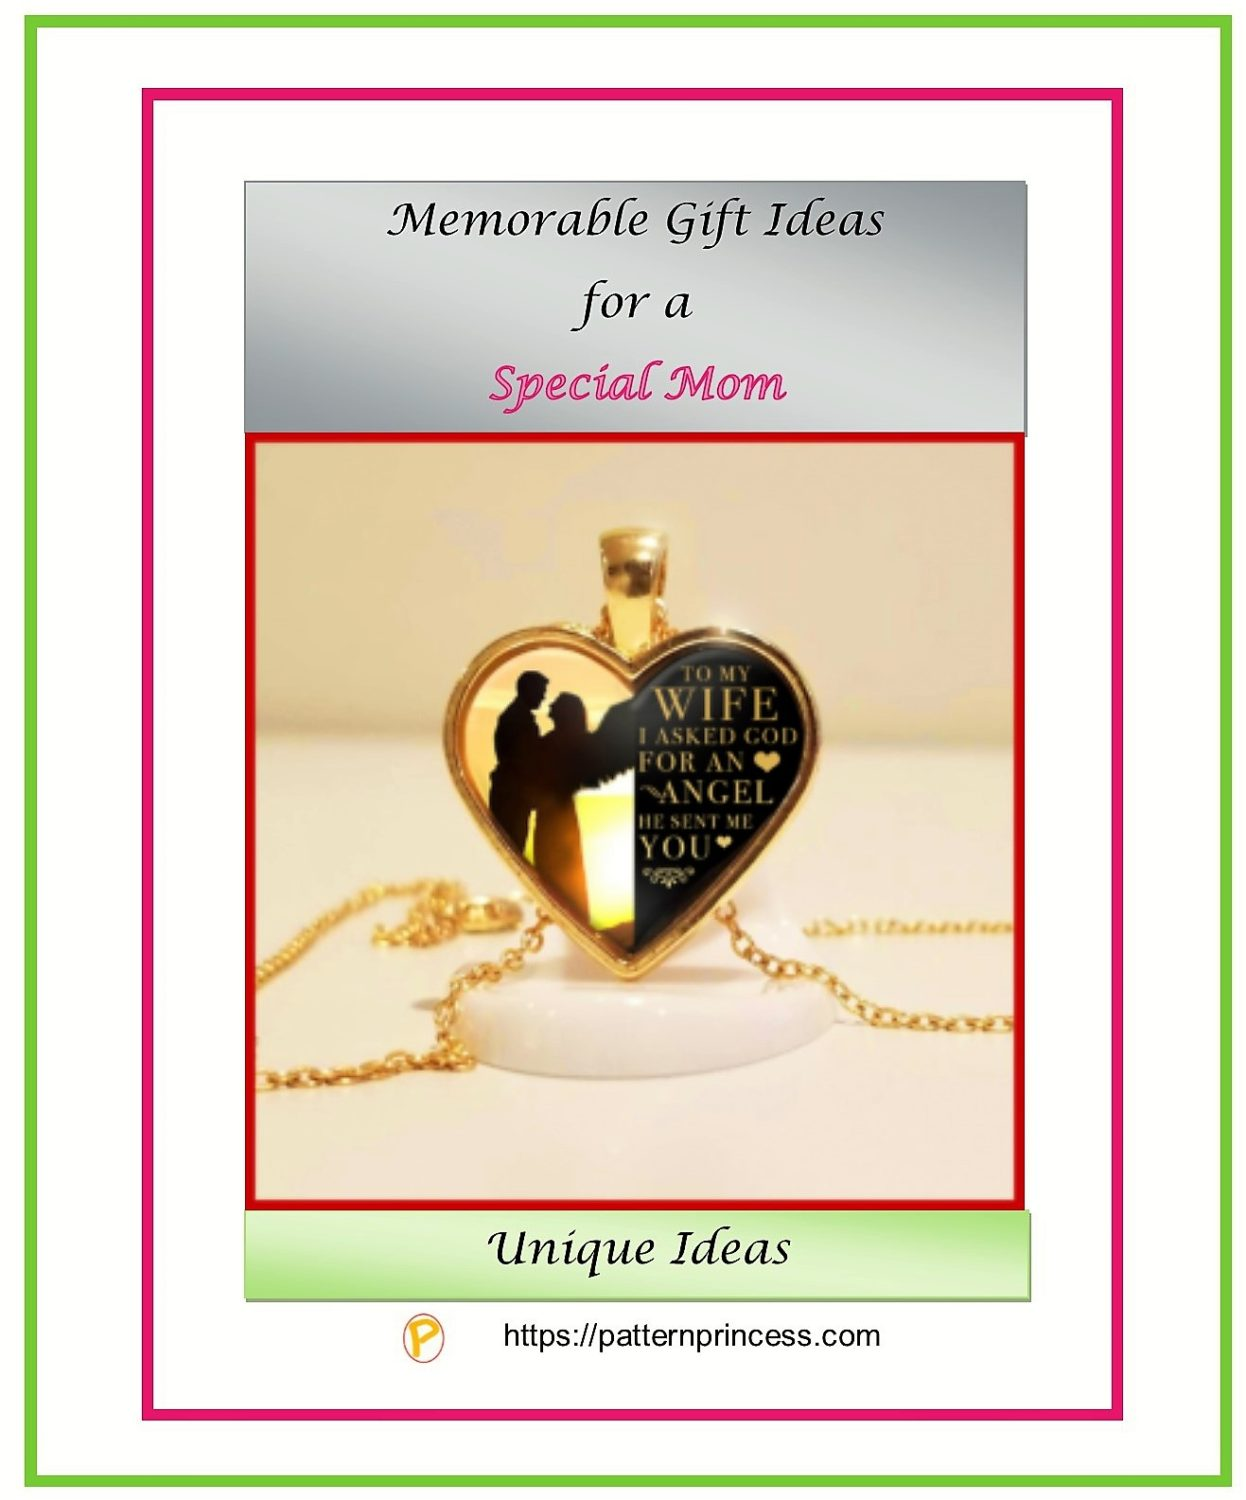 Memorable Gift Ideas for a Special Mom 1